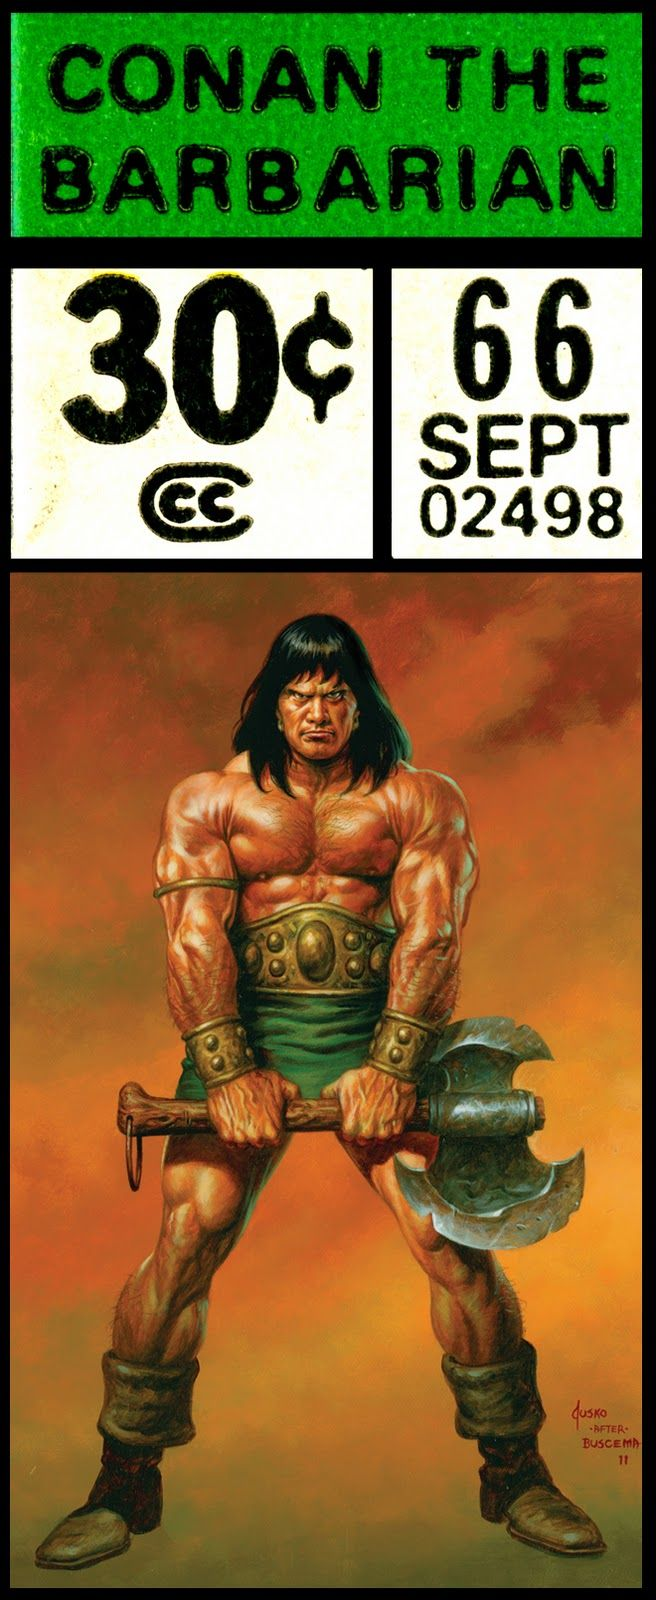 Conan the barbarian cartoon porn erotic gallery